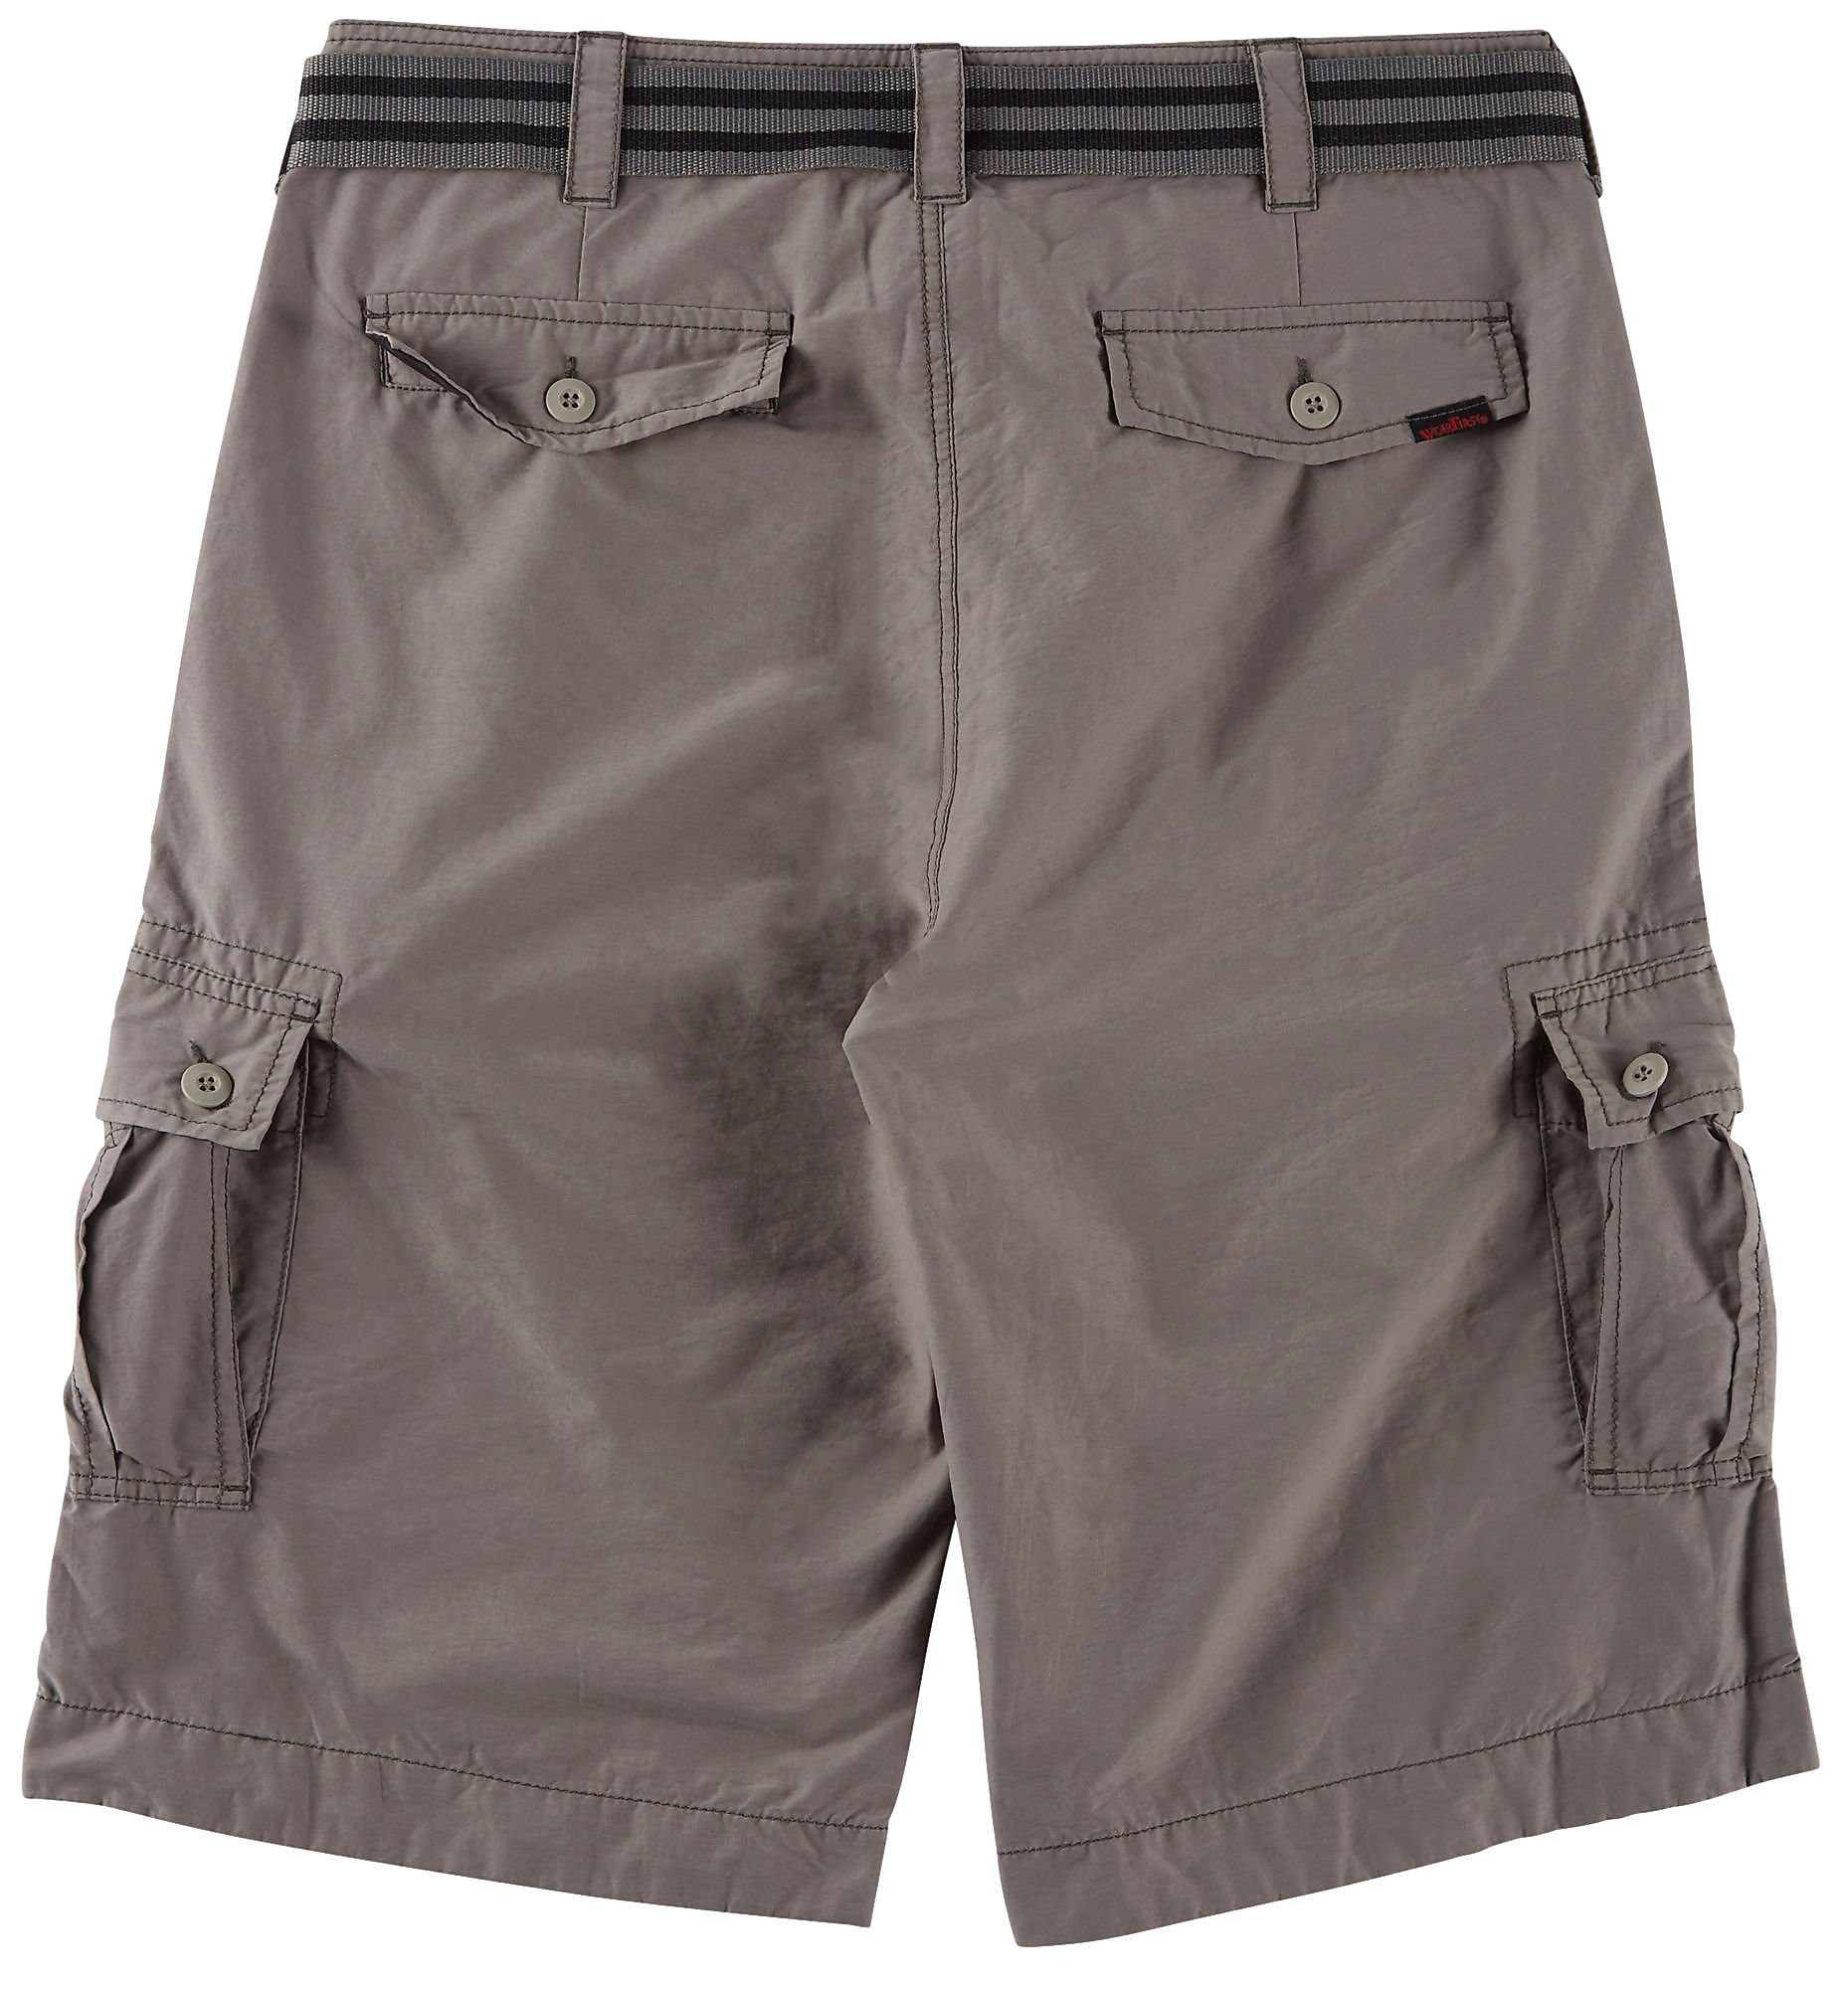 d8a91784e3 Wearfirst-Mens-Solid-Cargo-Shorts thumbnail 11